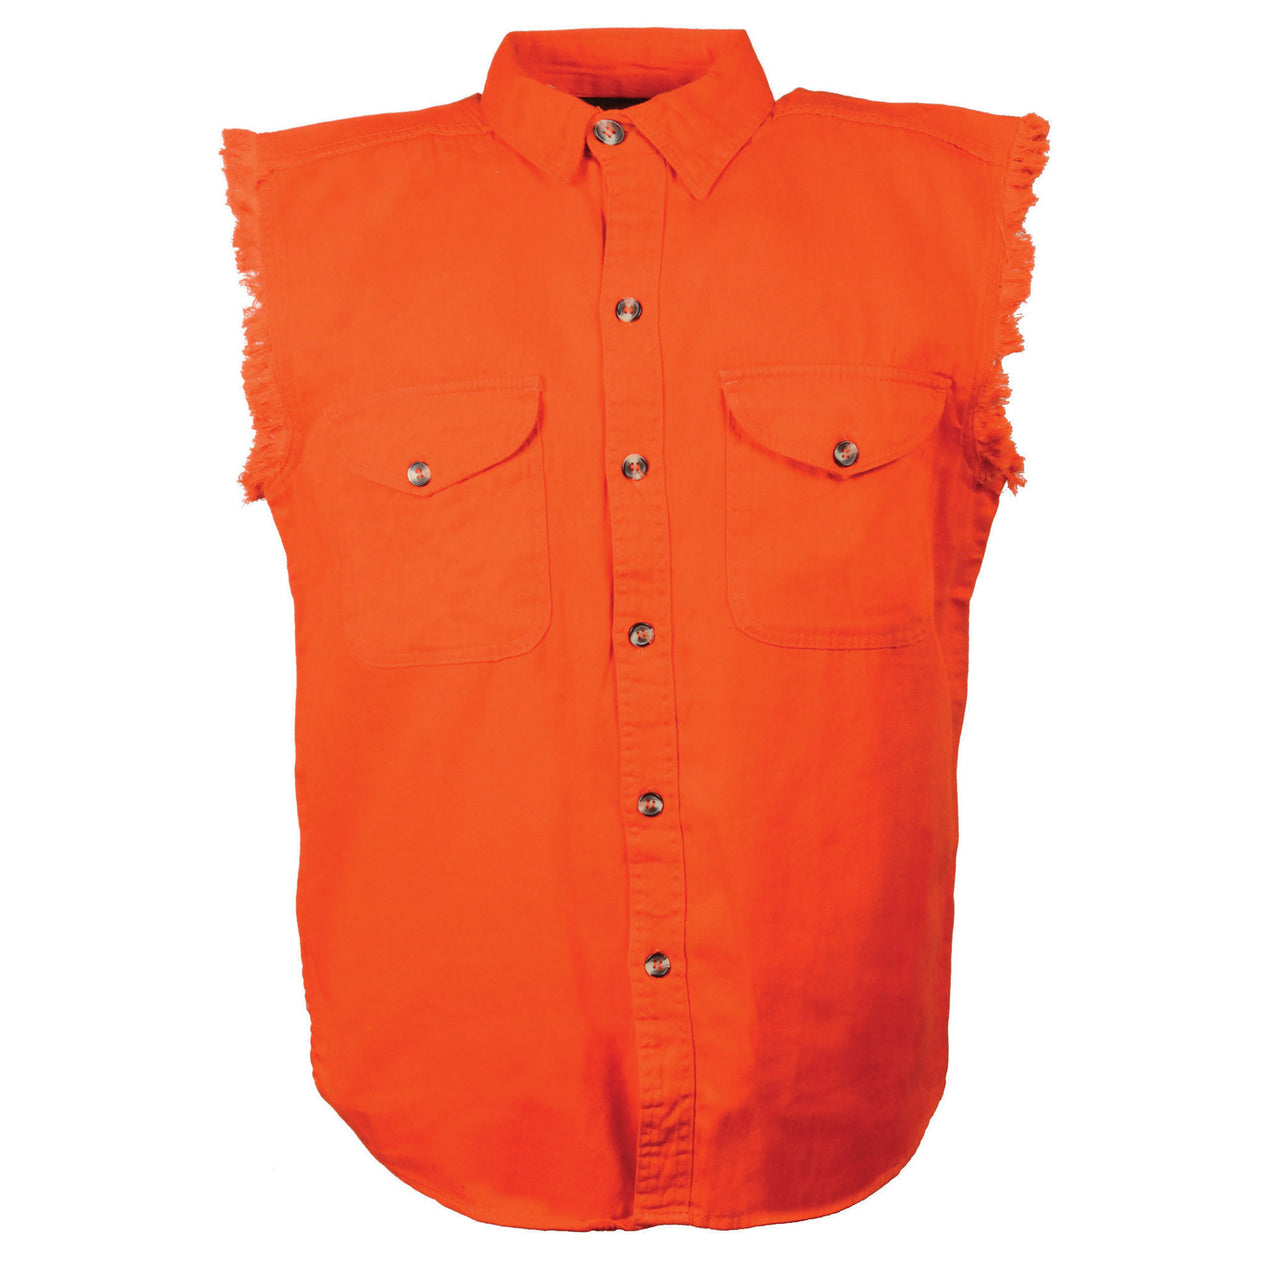 Men's Orange Lightweight Sleeveless Denim Shirt - HighwayLeather